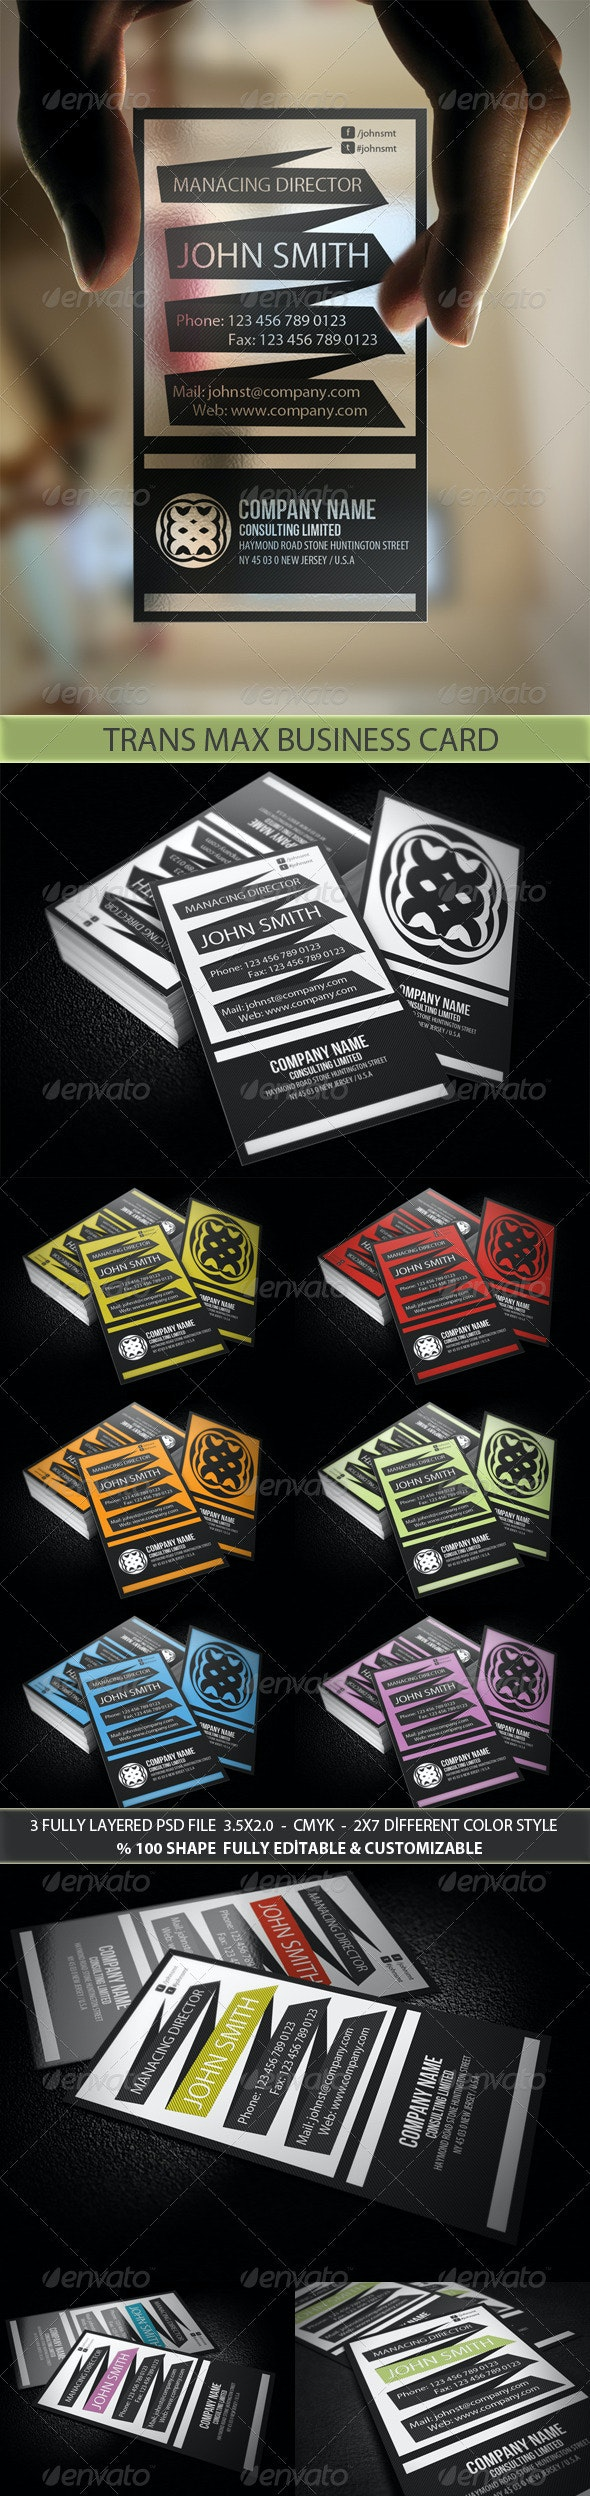 Trans Max Business Card - Creative Business Cards